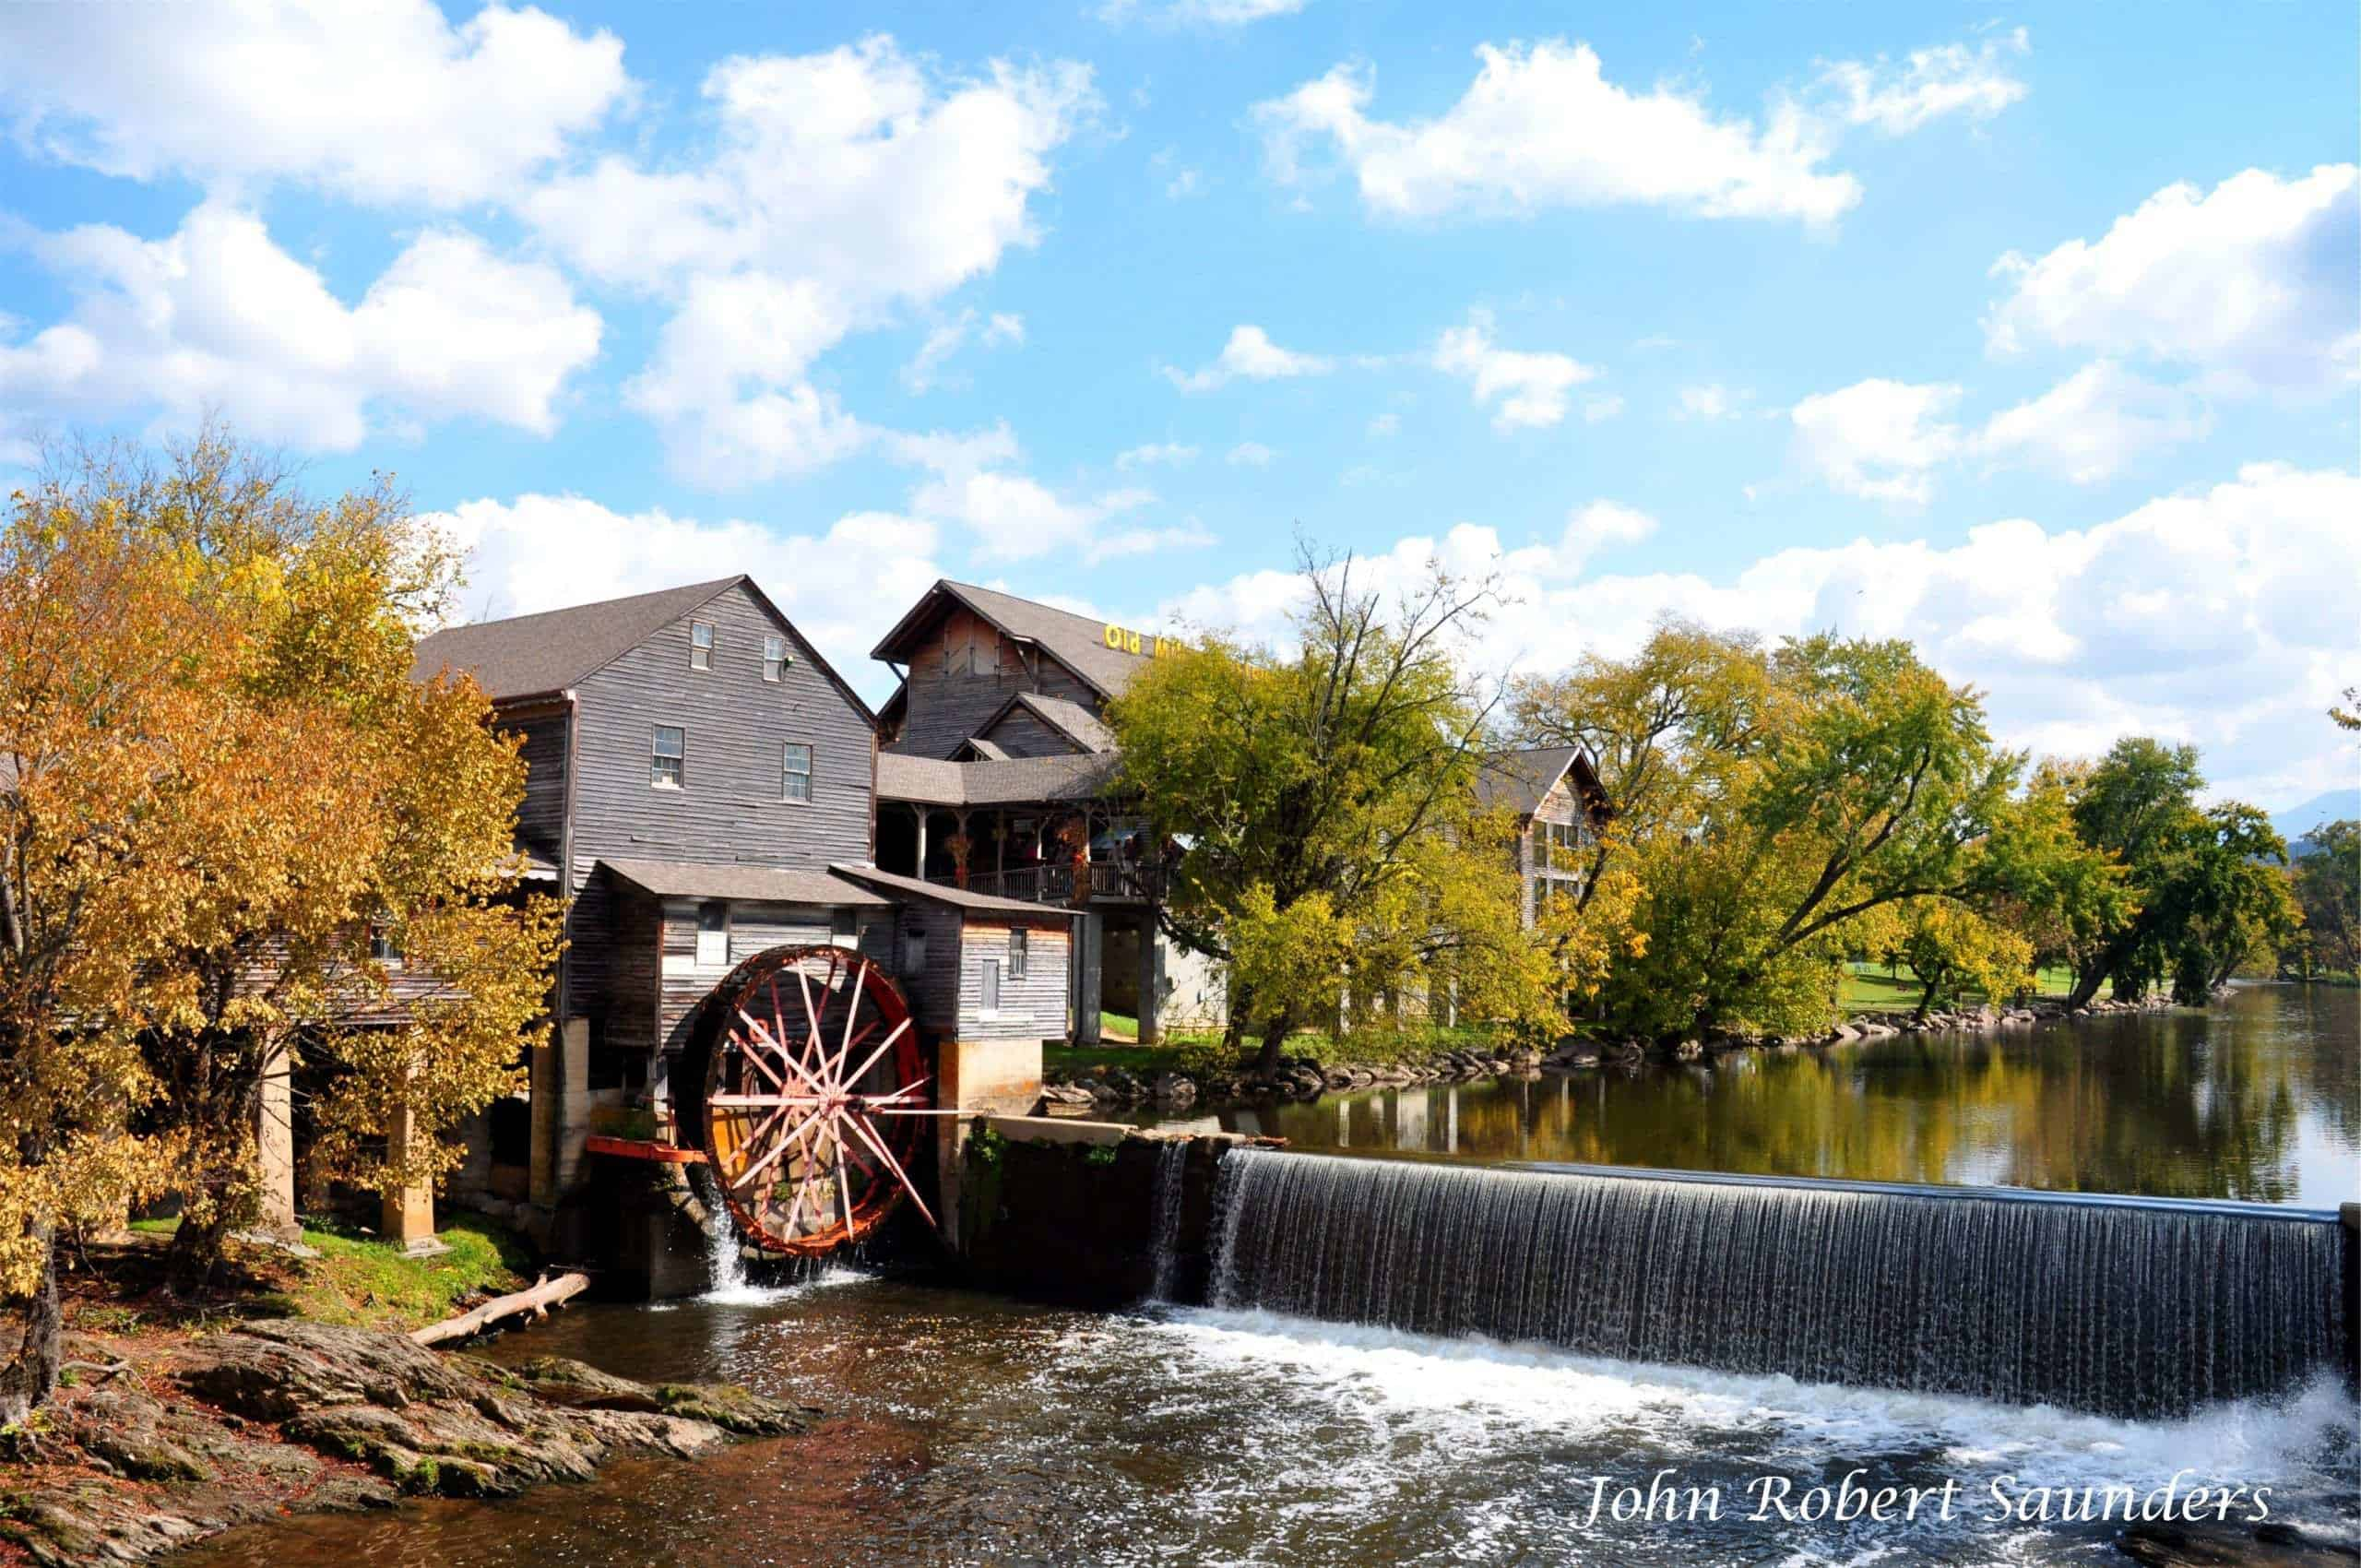 Where to Have Dinner in Pigeon Forge: Top 5 Restaurants